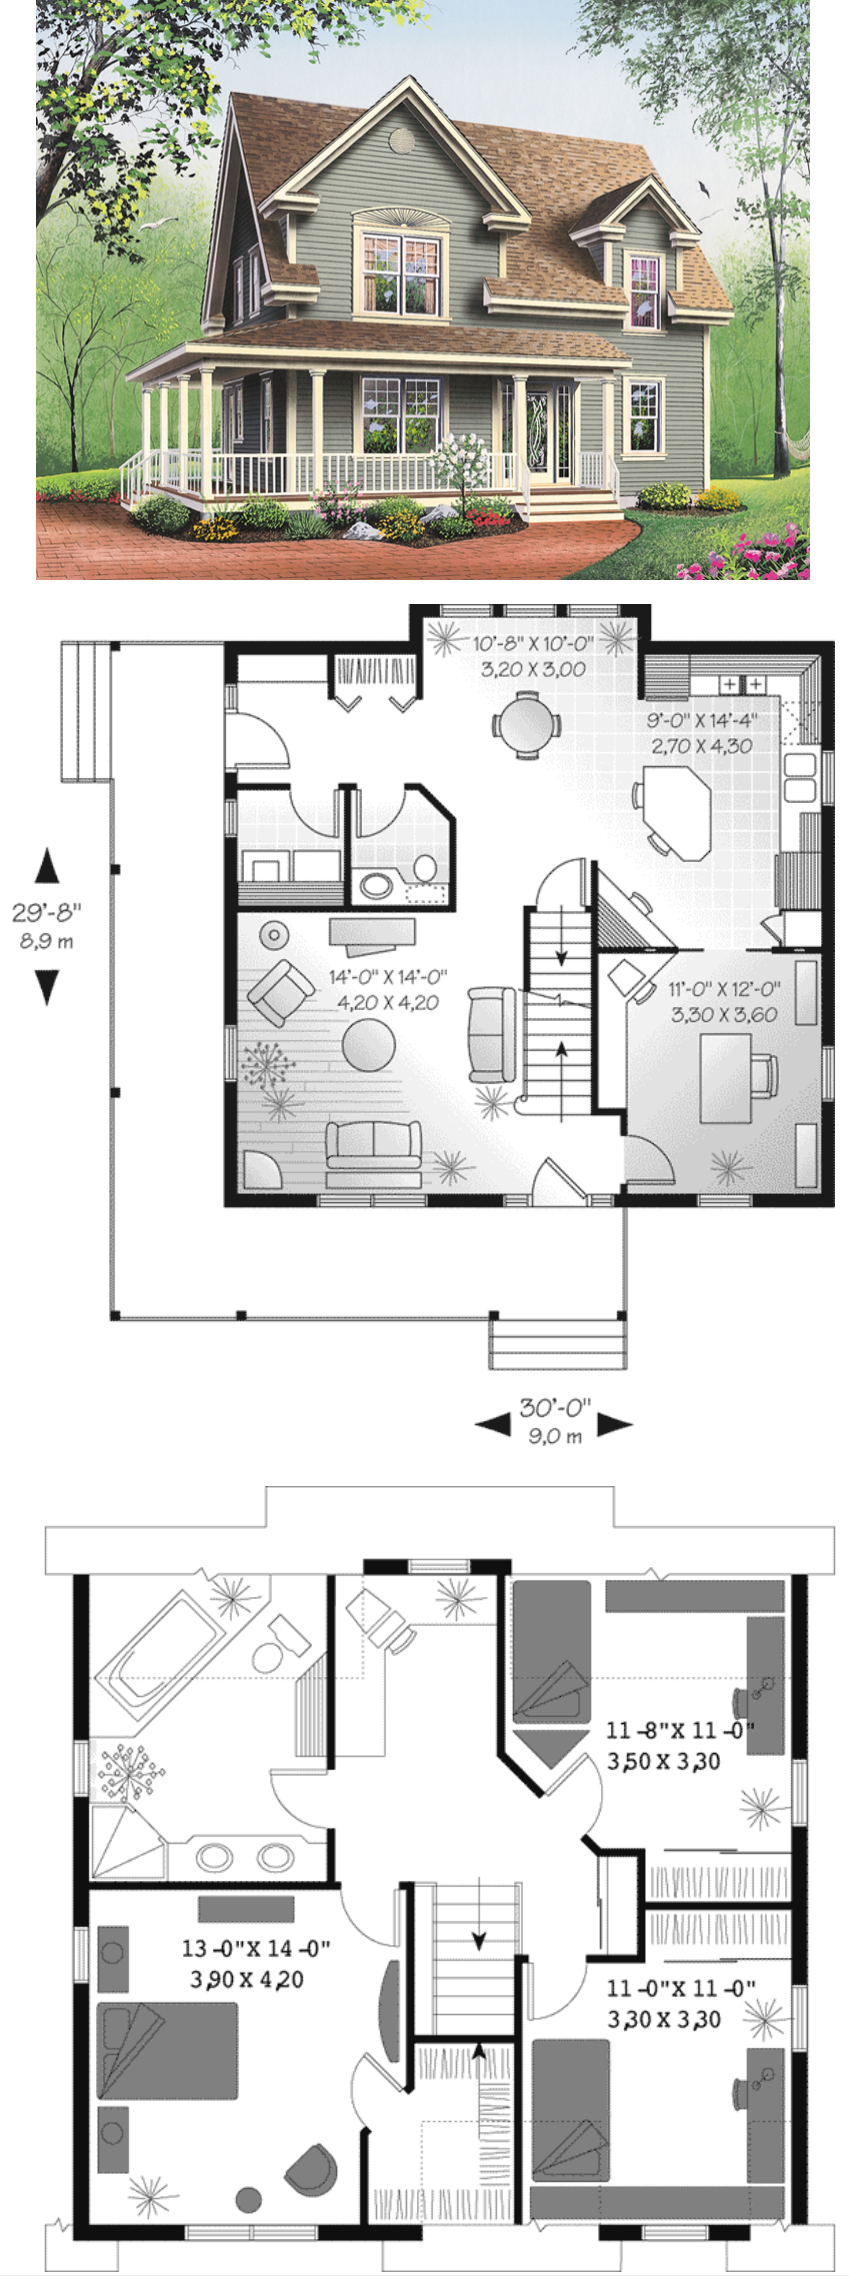 Amberly Bay Farmhouse Small Farmhouse Plans House Plans Farmhouse Farmhouse Plans